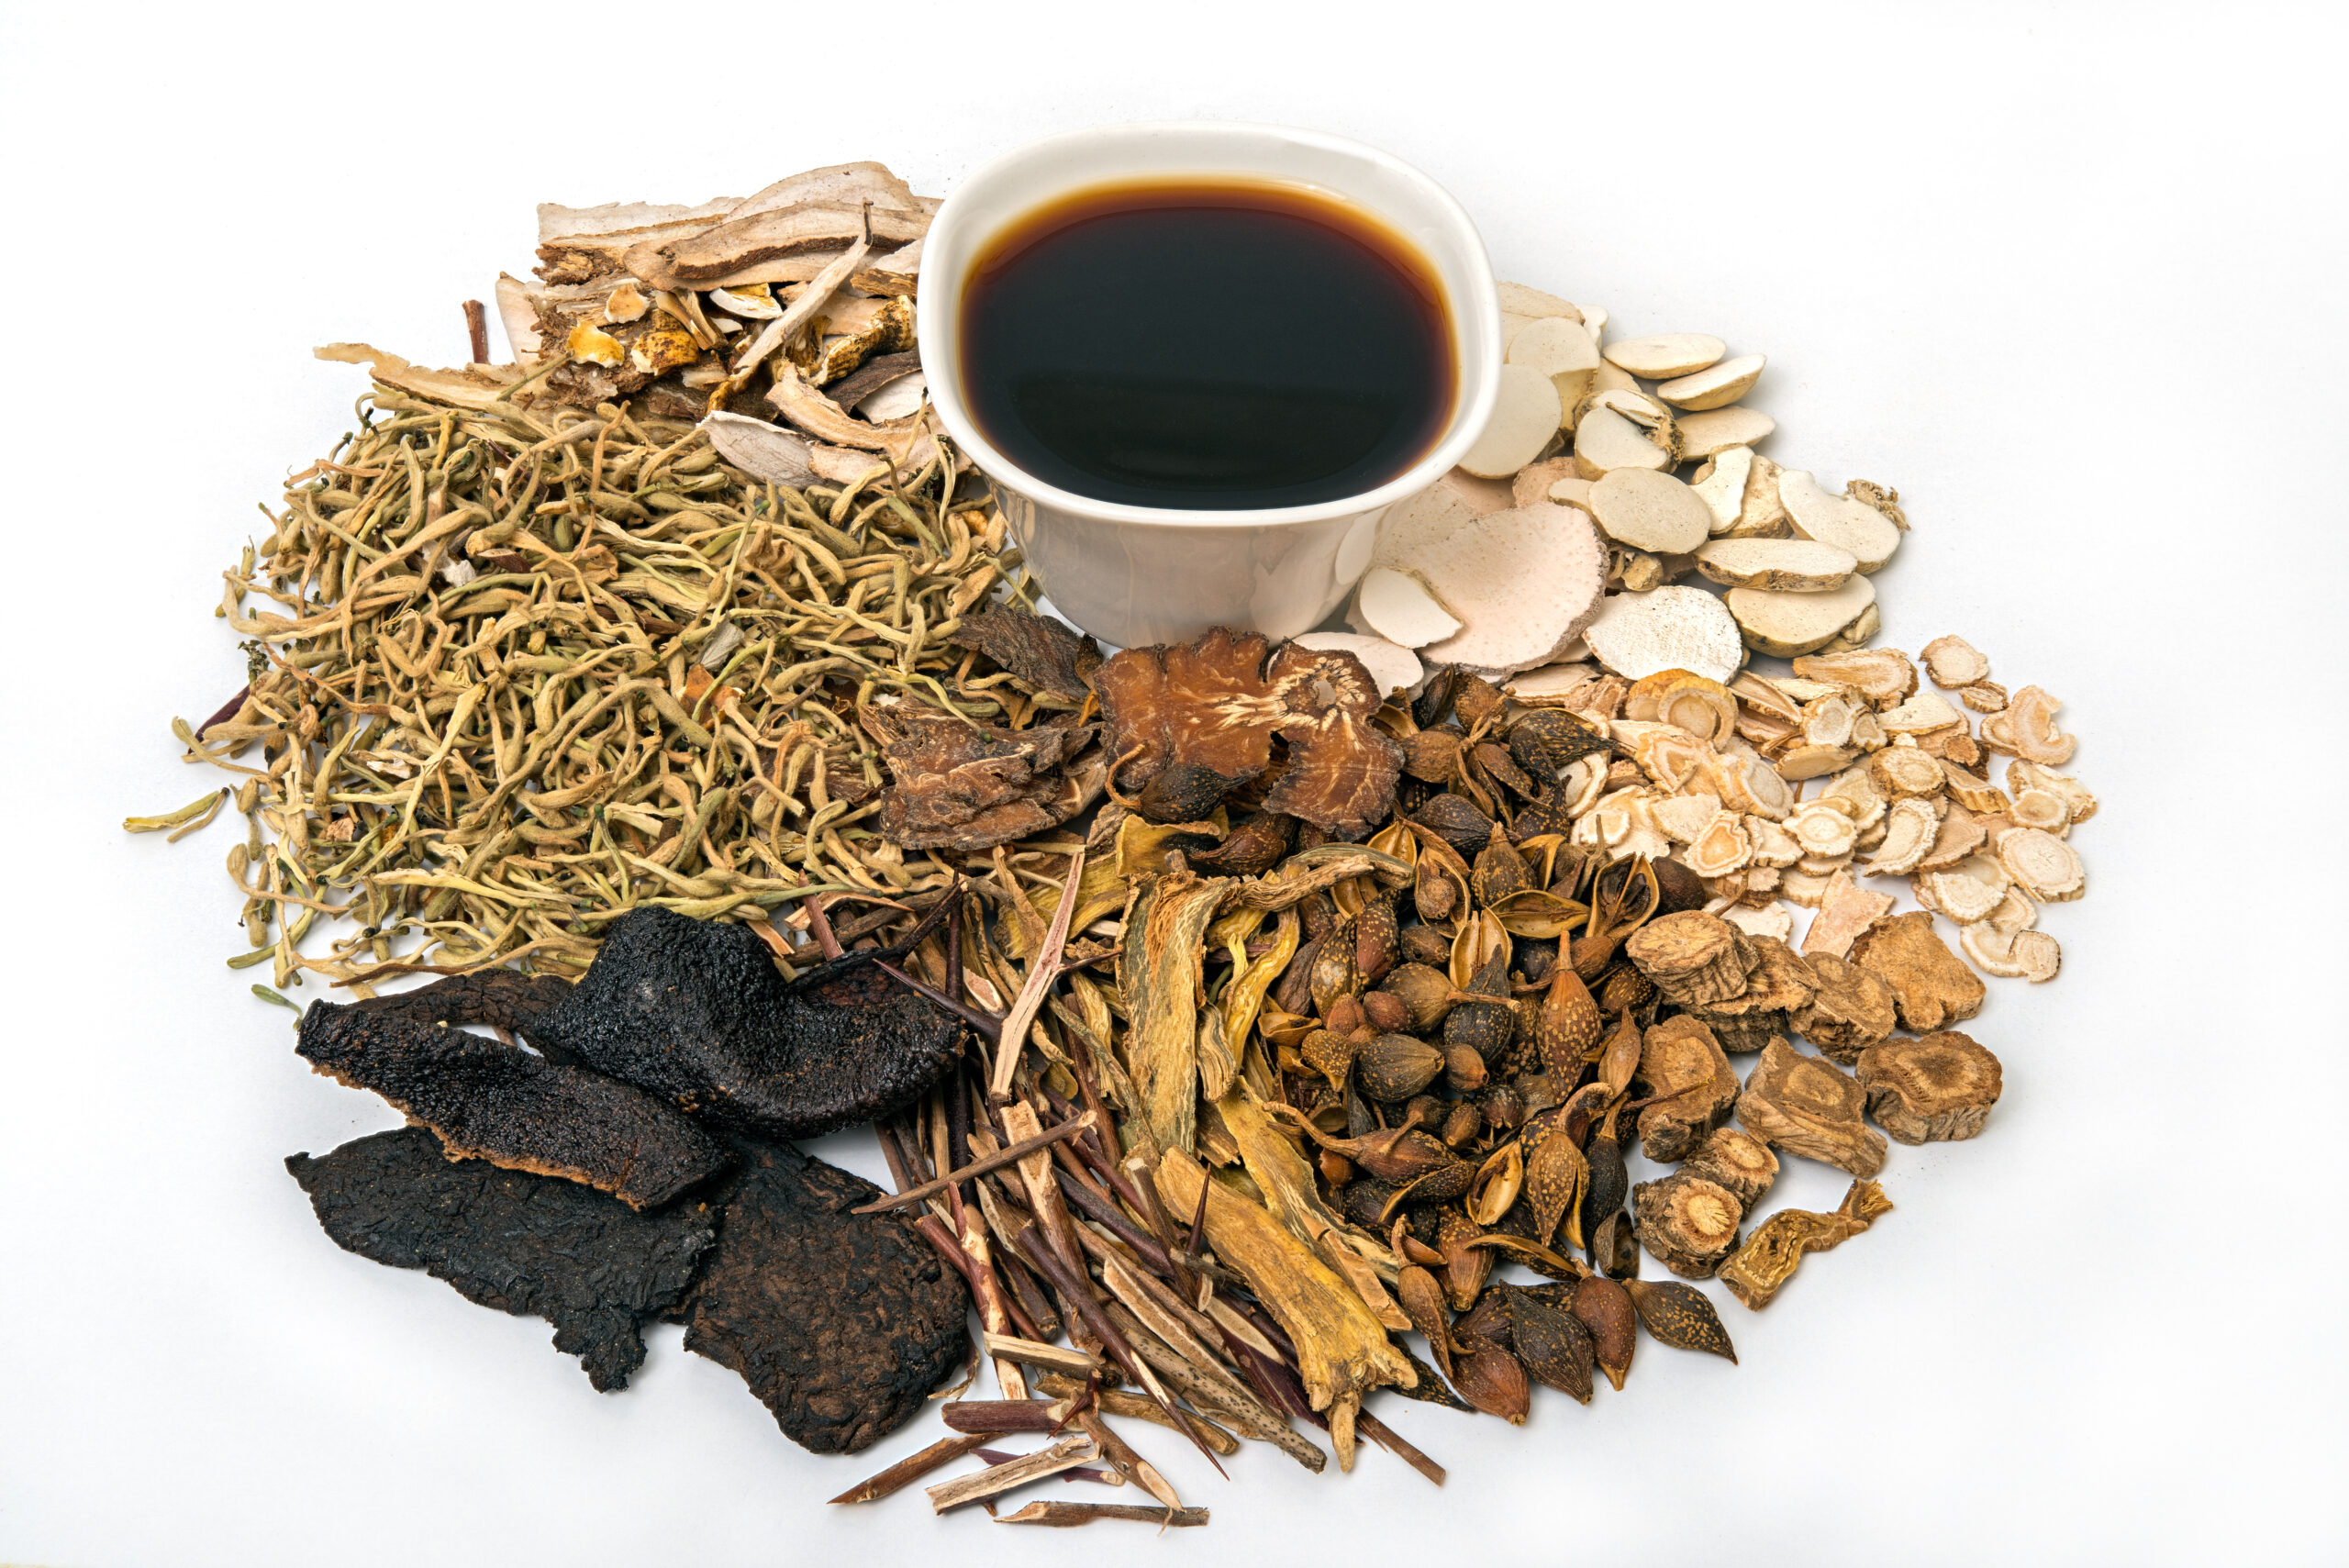 The Safety Of Herbal Medicine